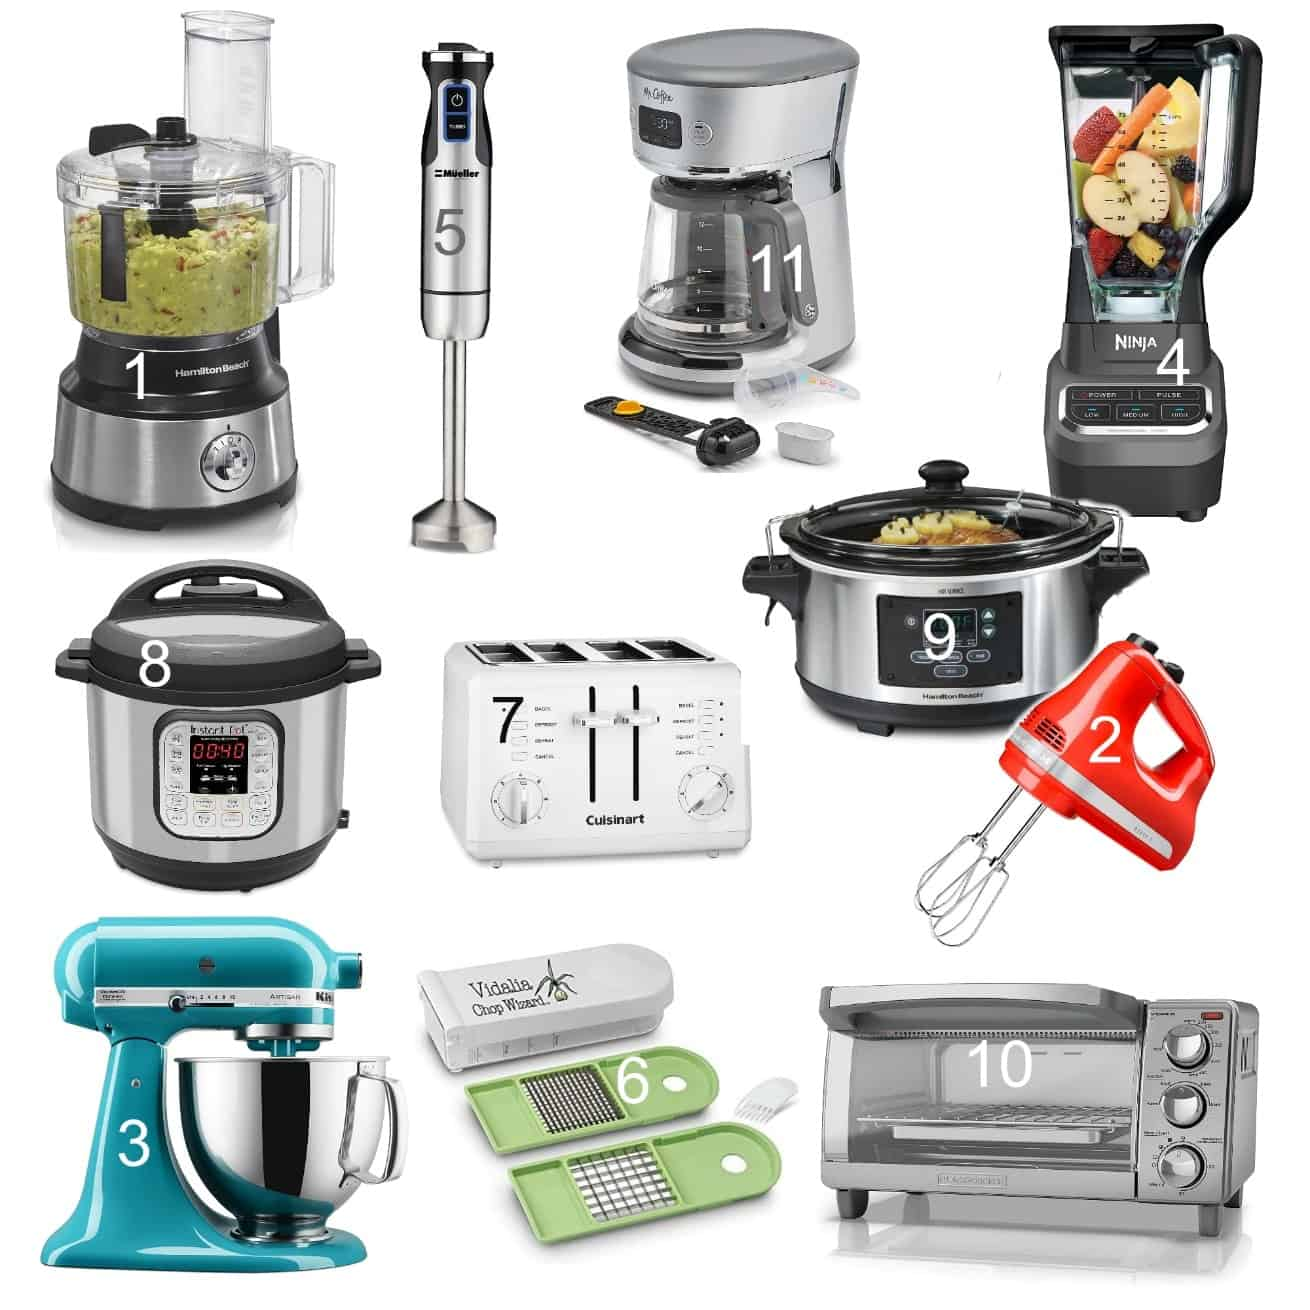 Best Inexpensive Small Kitchen Appliances Everyday Cheapskate